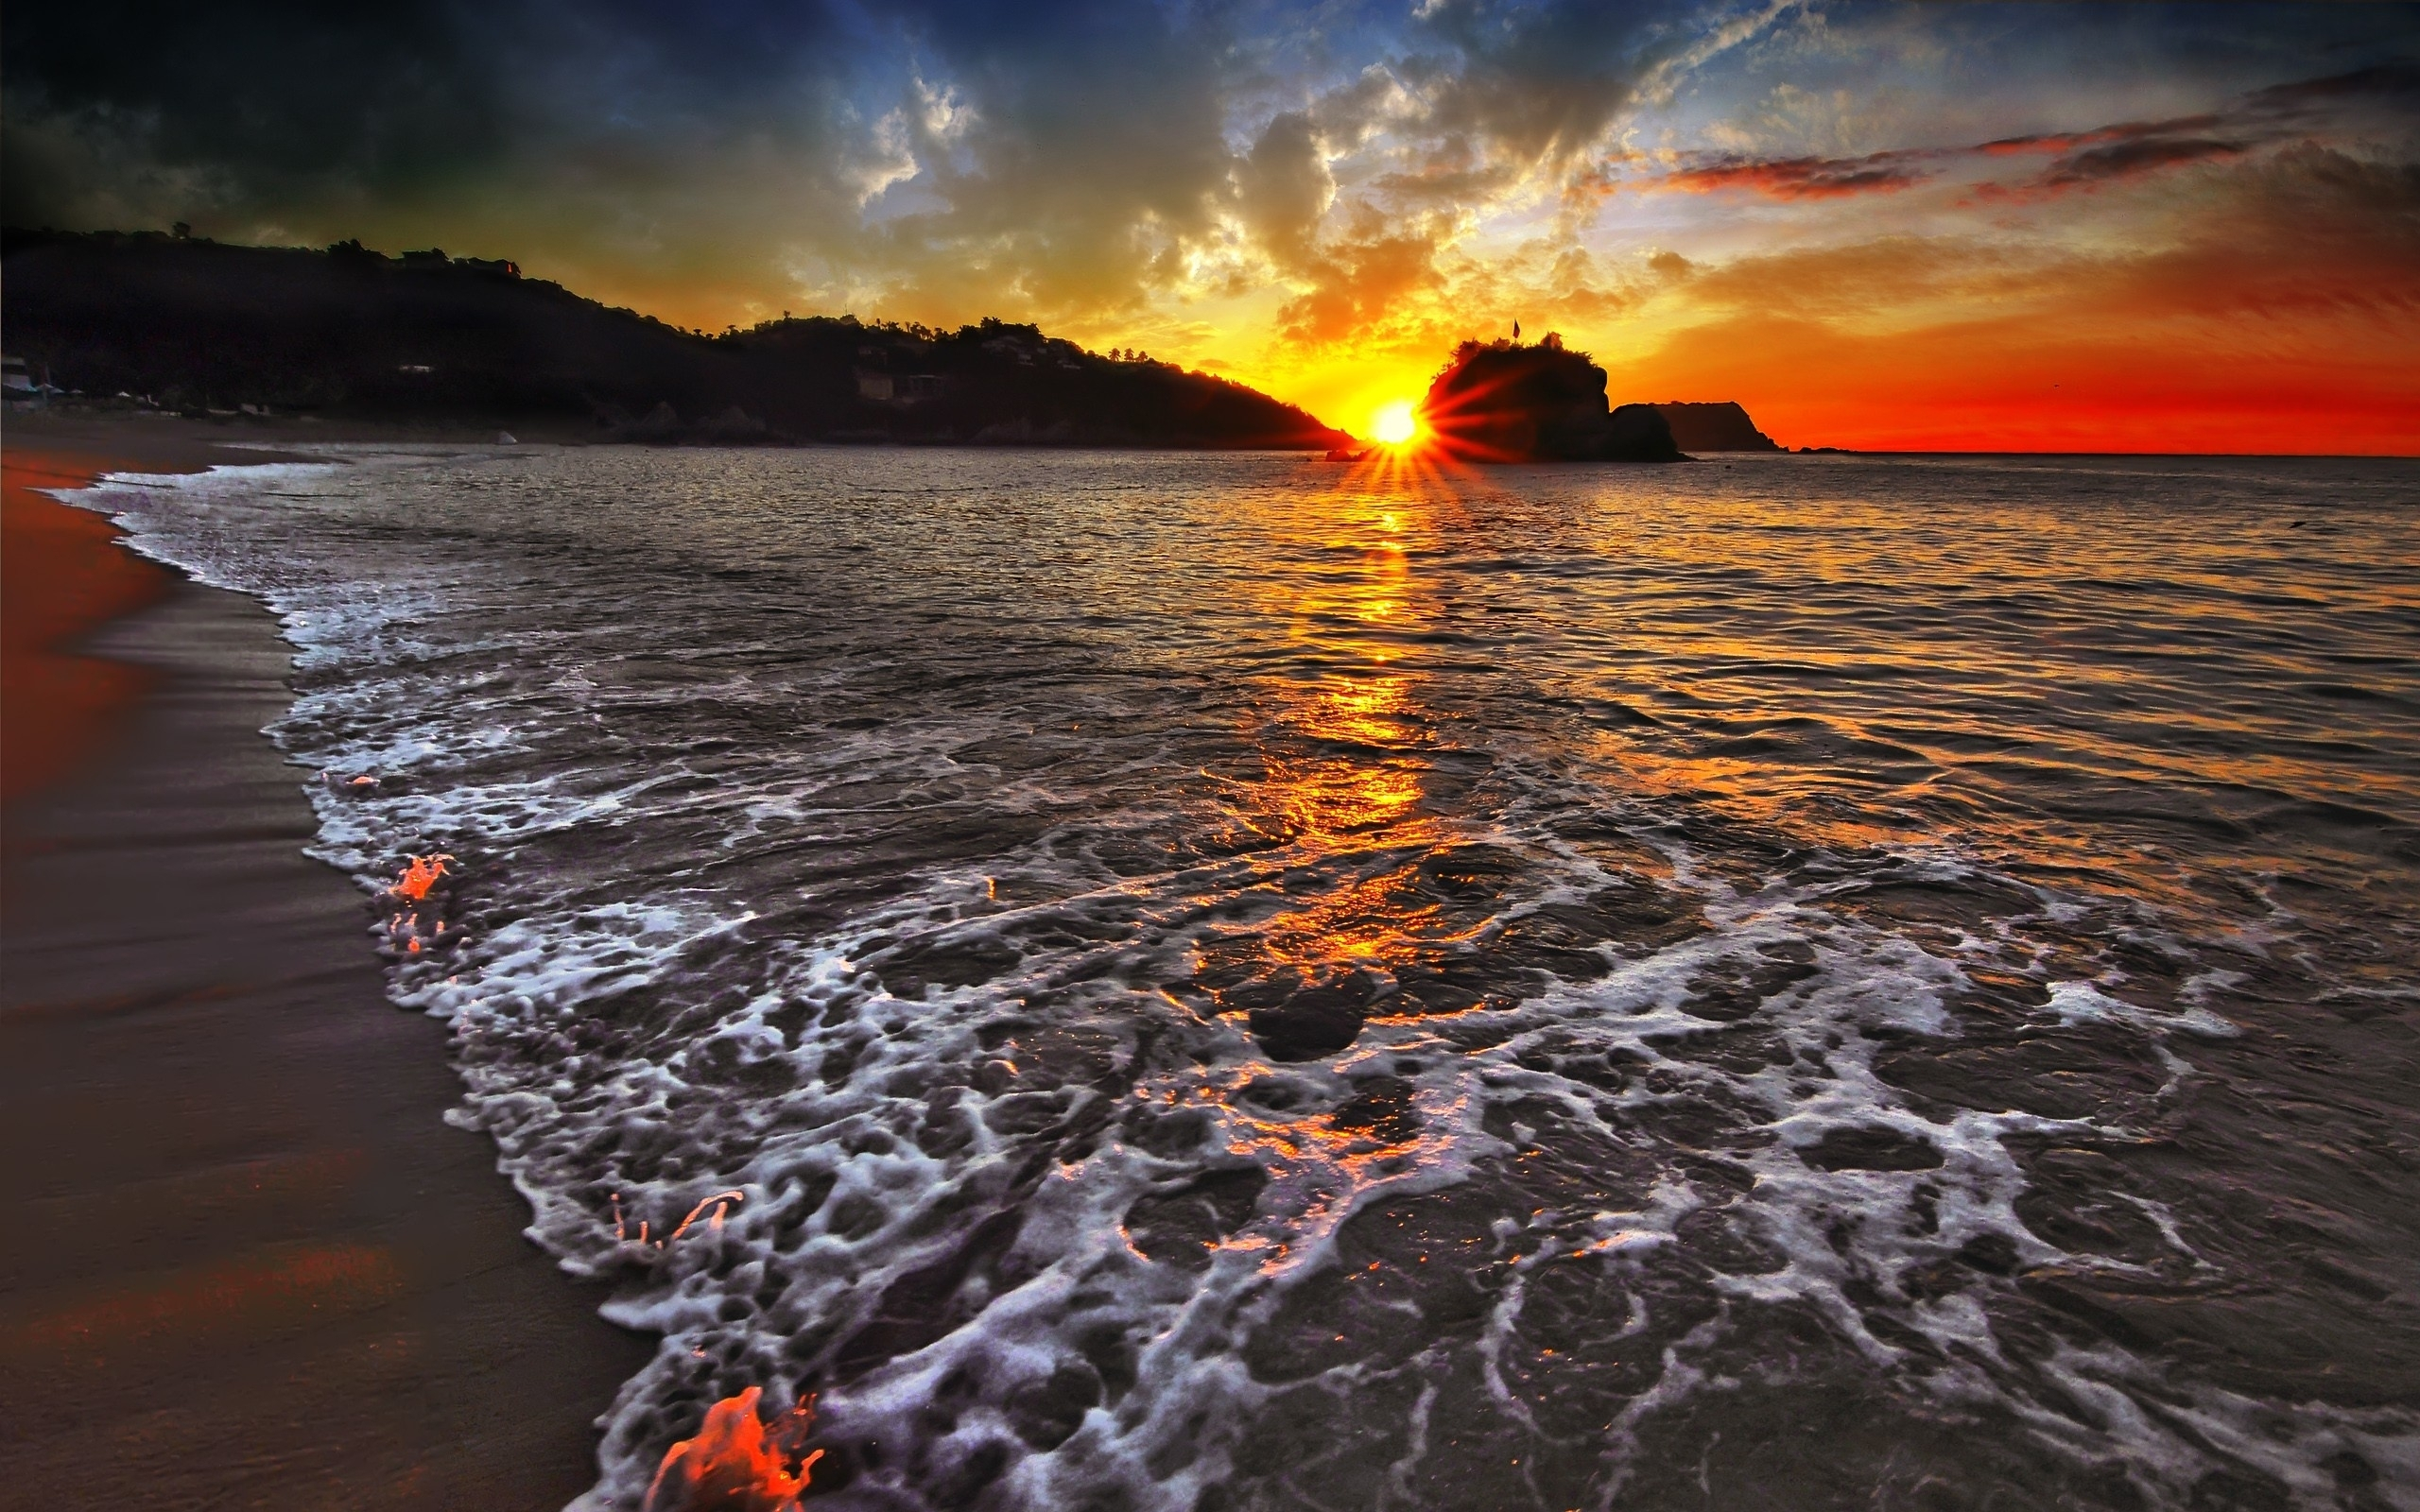 wallpaper sunset landscapes nature beach categories nature landscapes 1406